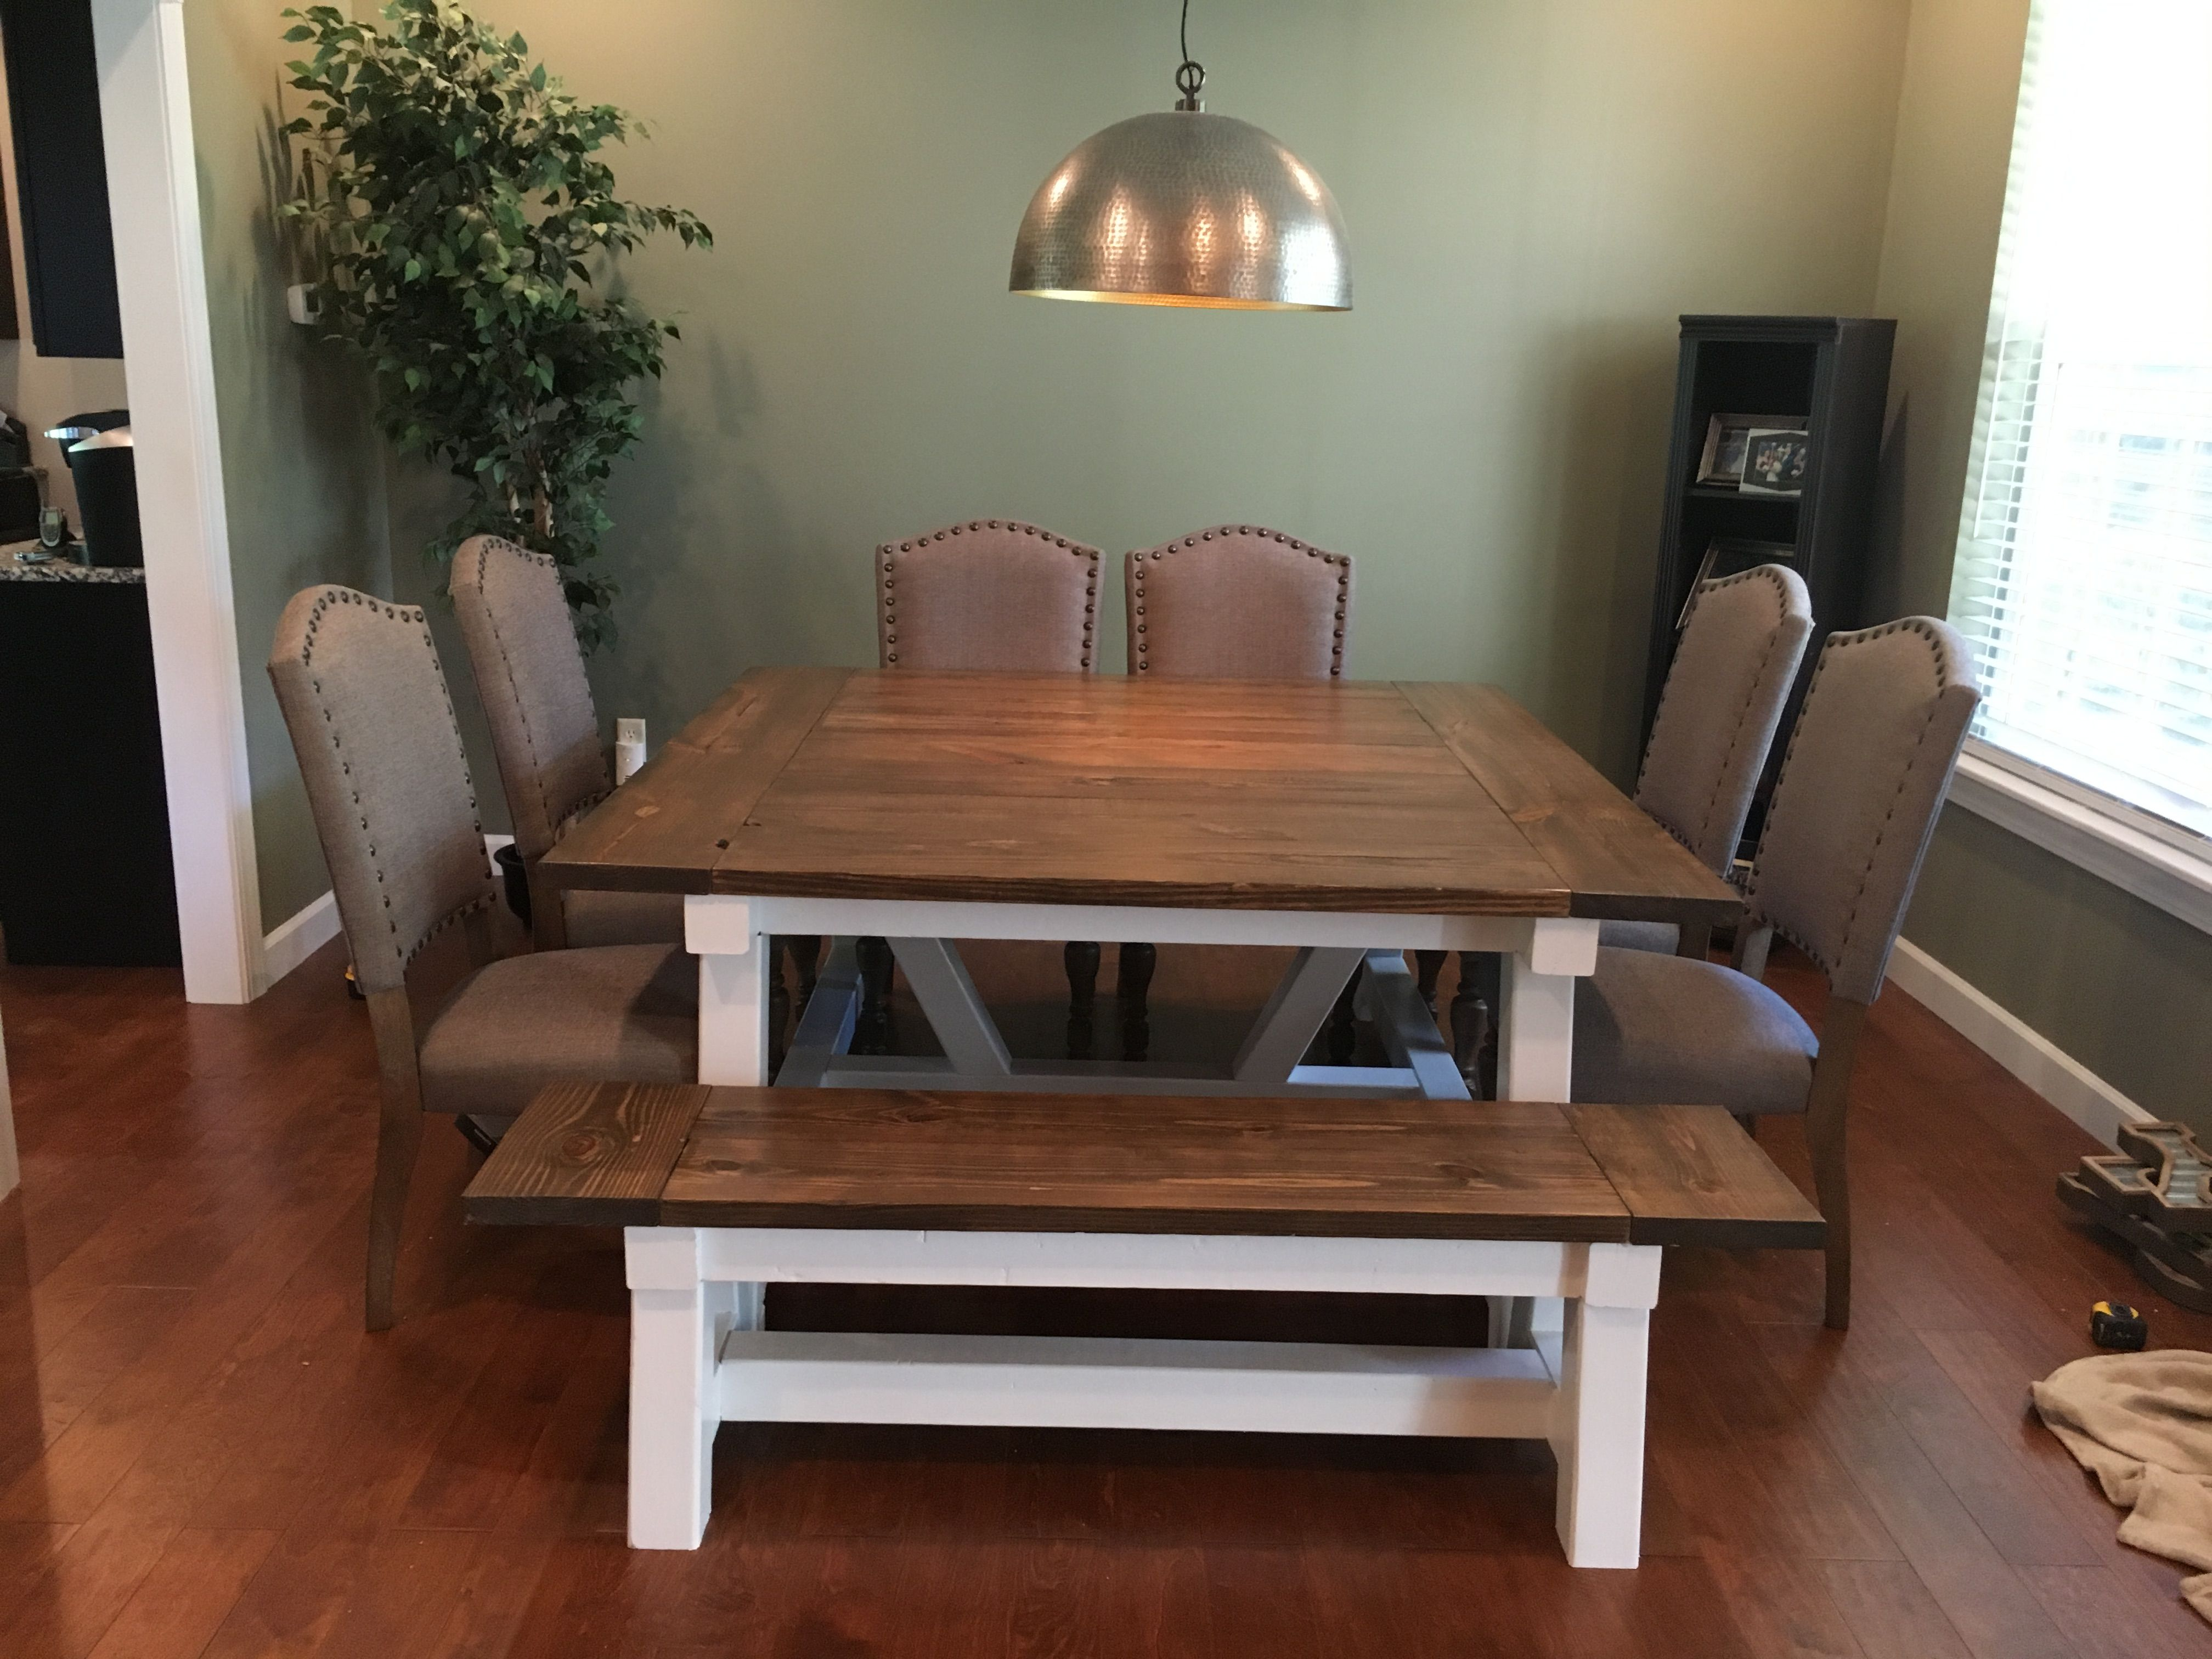 ana white square farmhouse table diy projects farmhouse dining table square farmhouse on farmhouse kitchen table diy id=51376